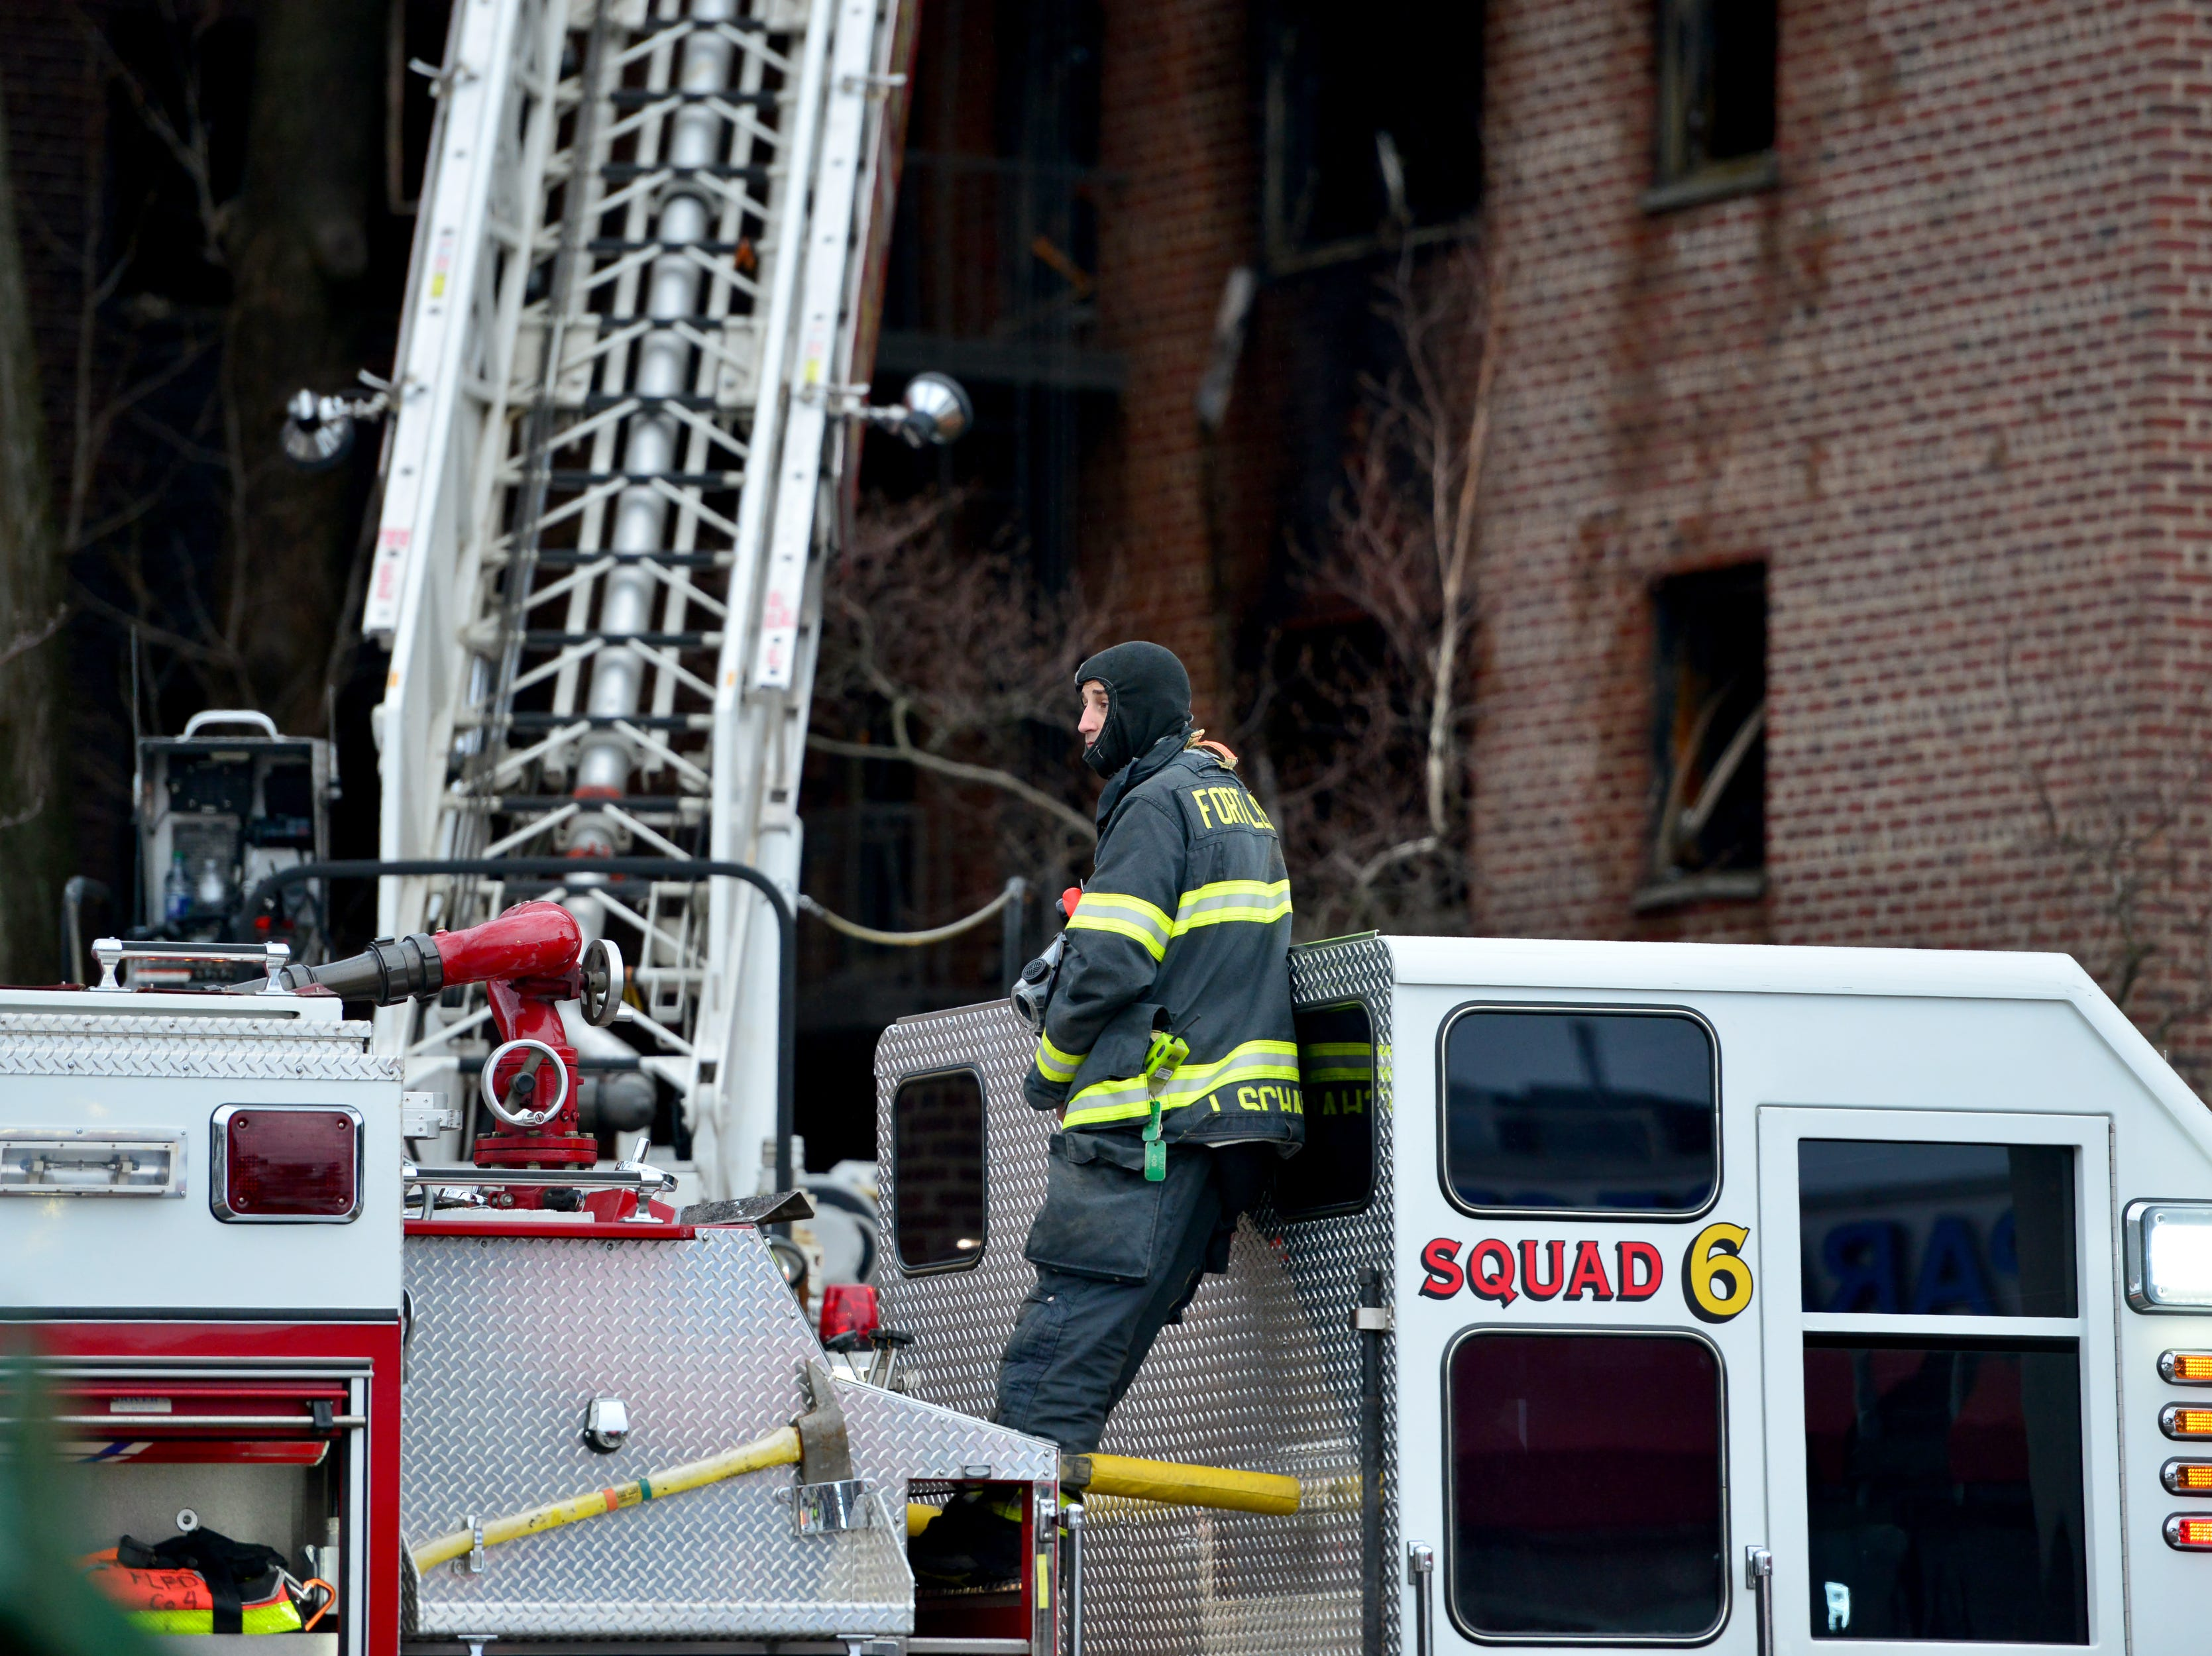 Firefighters are hitting hot spots the morning after a fire broke out at an apartment complex on Edwin Ave in Fort Lee on Friday February 15, 2019.